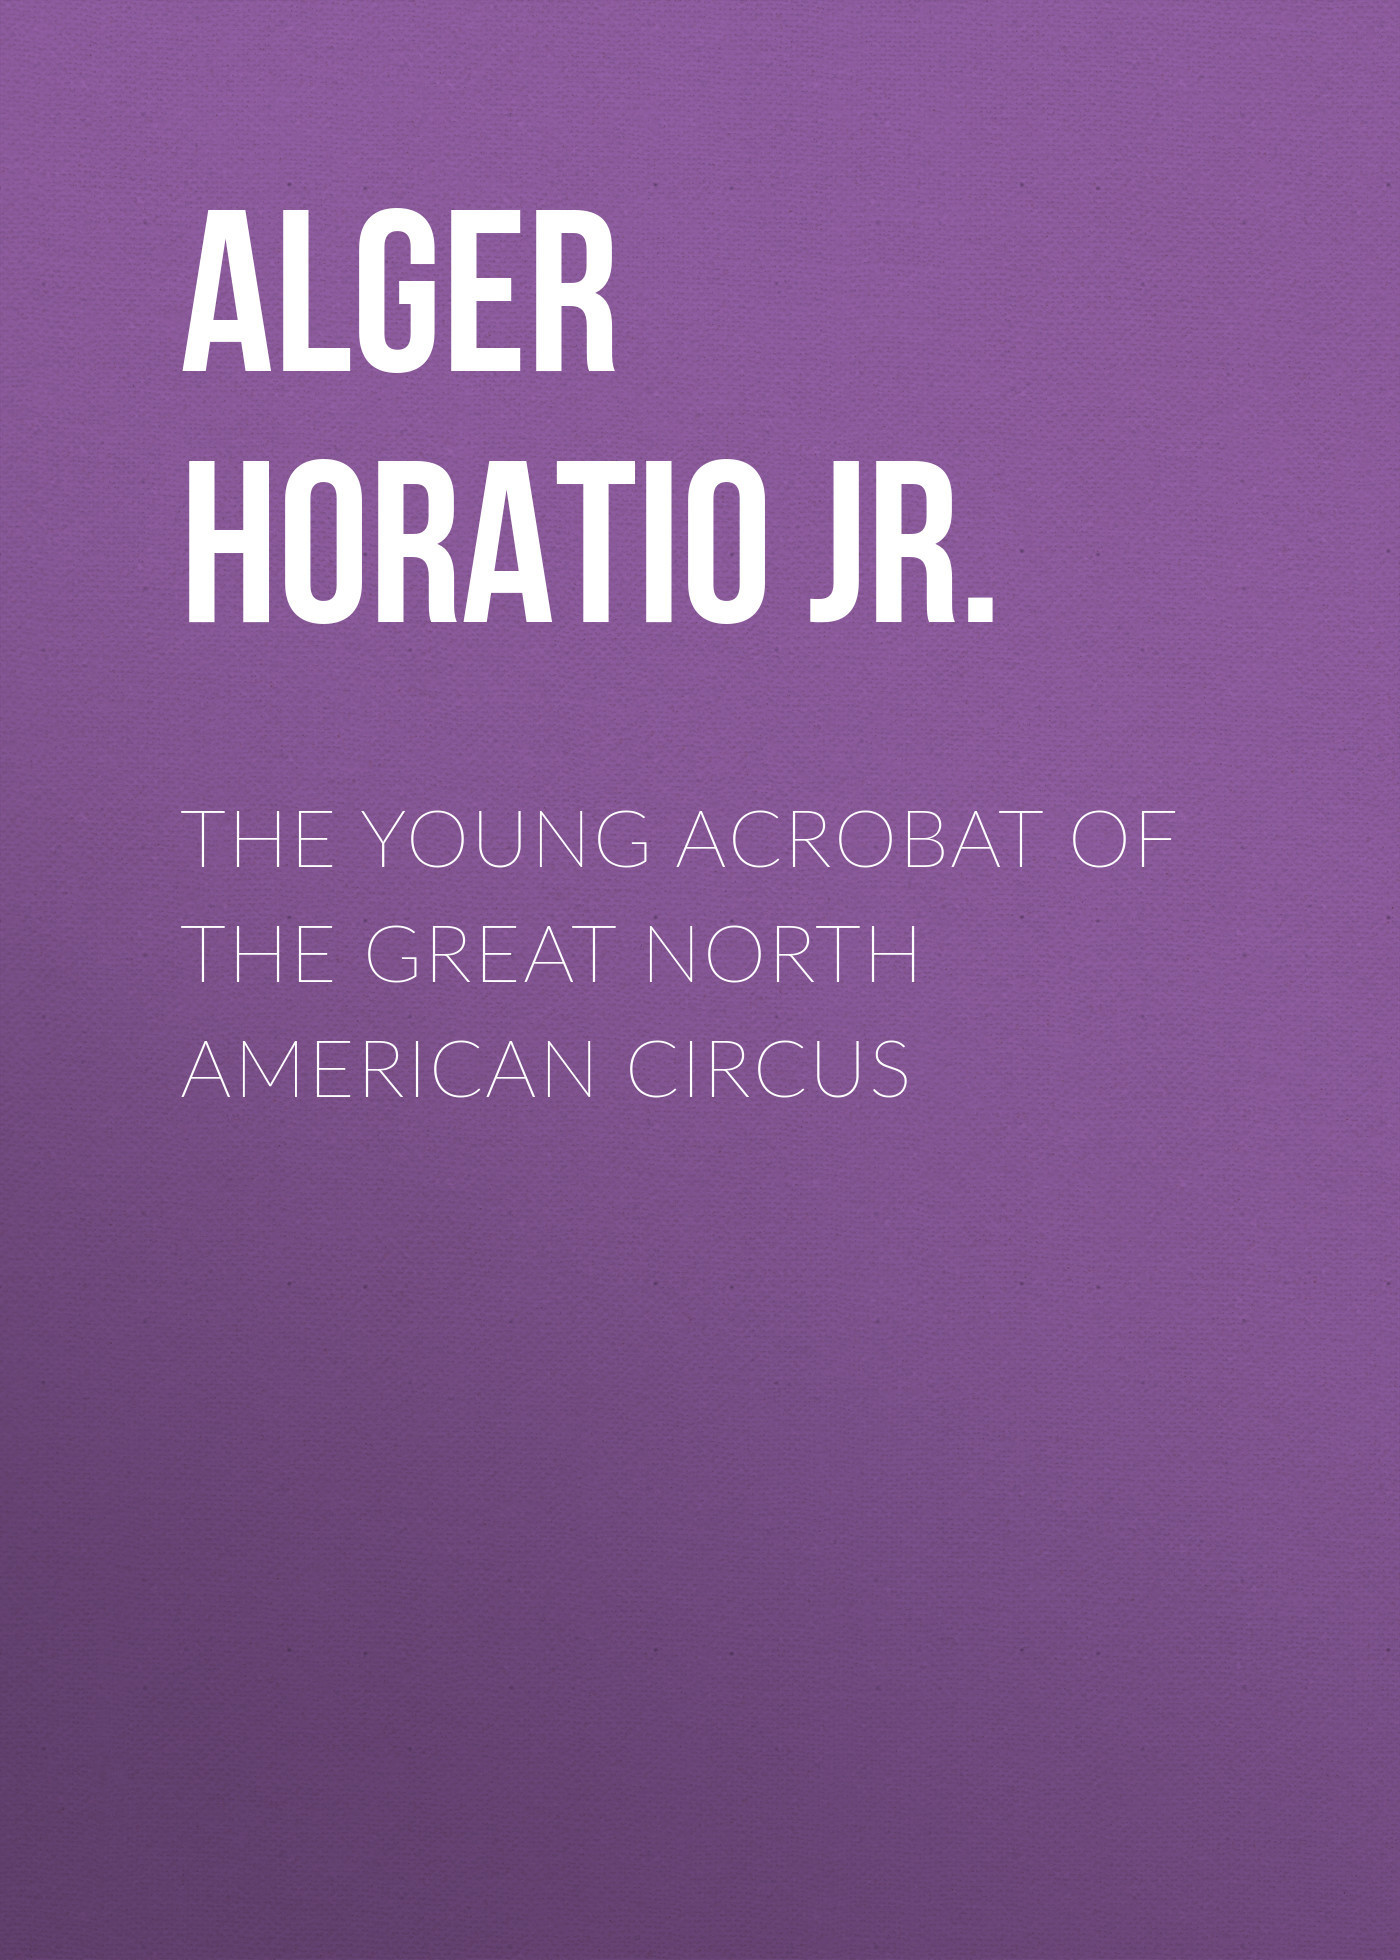 Фото Alger Horatio Jr. The Young Acrobat of the Great North American Circus